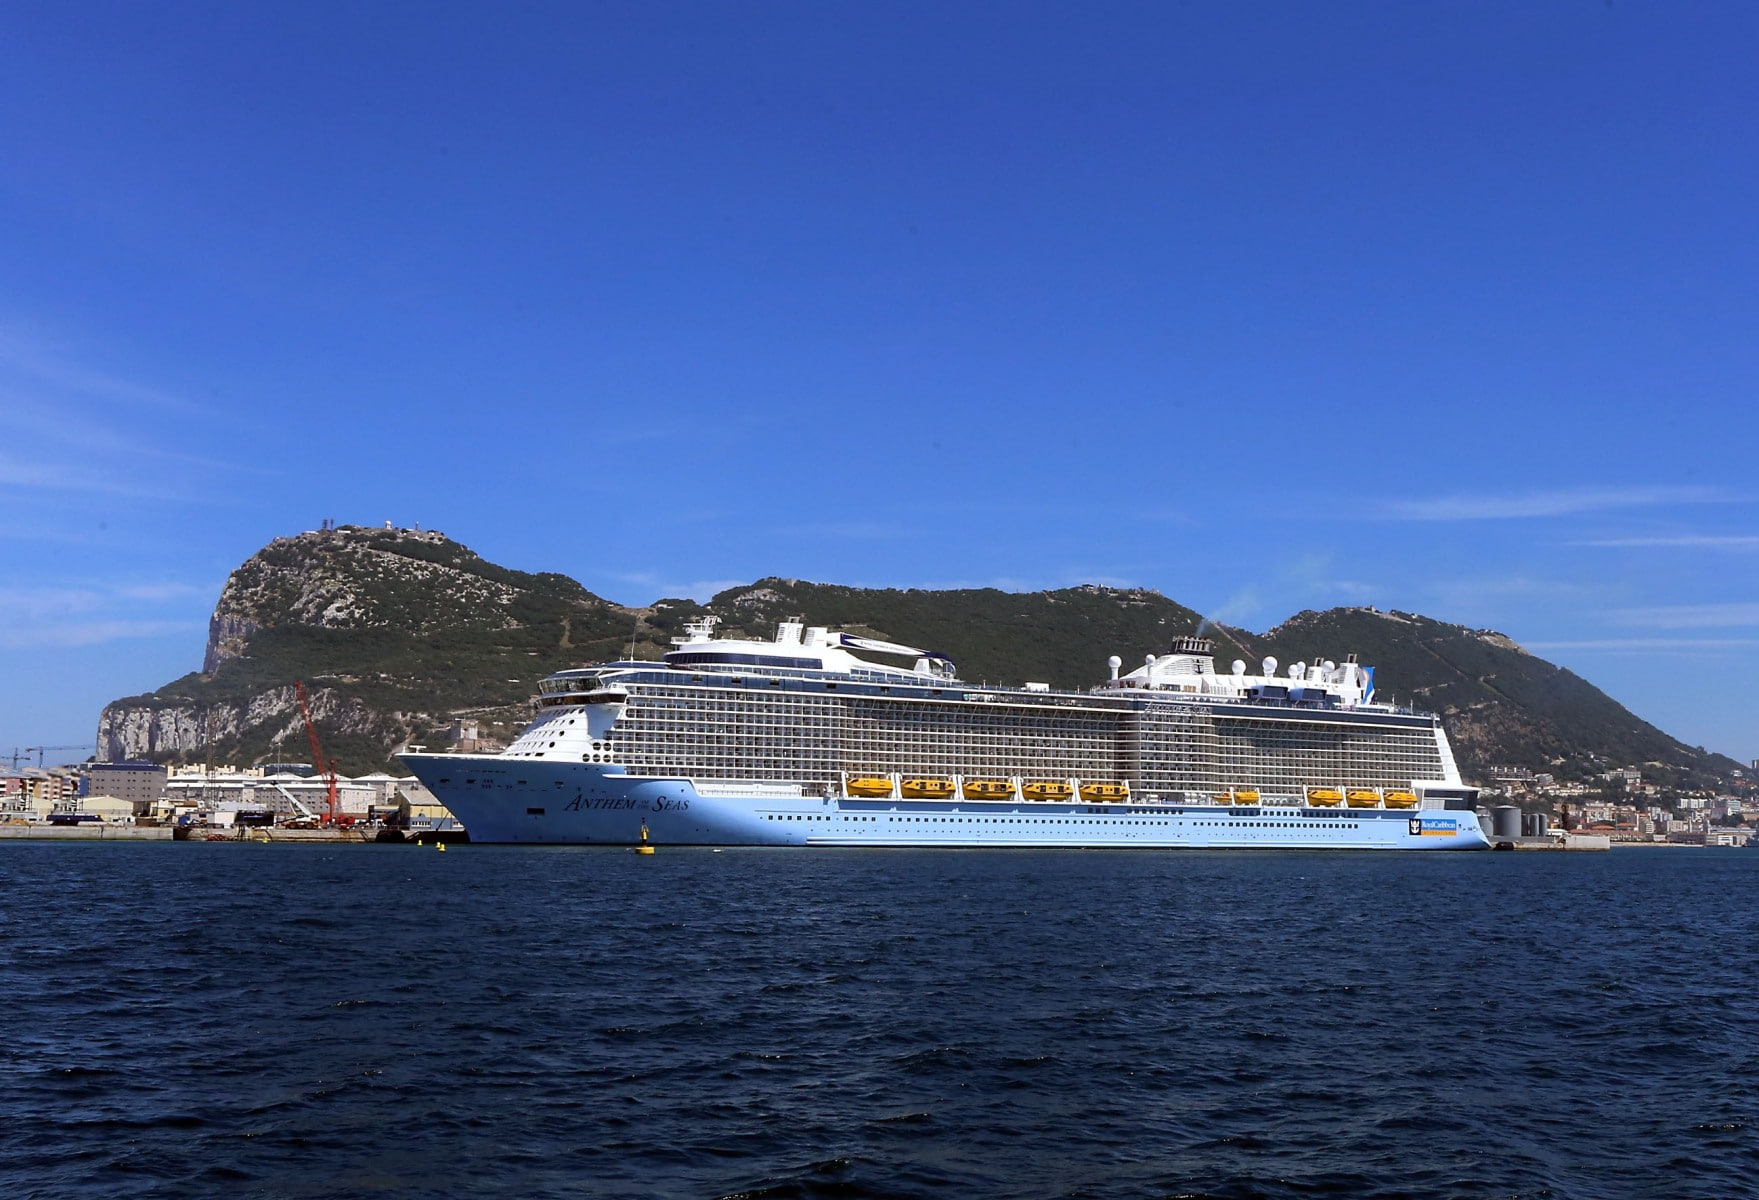 cruise-liners-10_39603825692_o